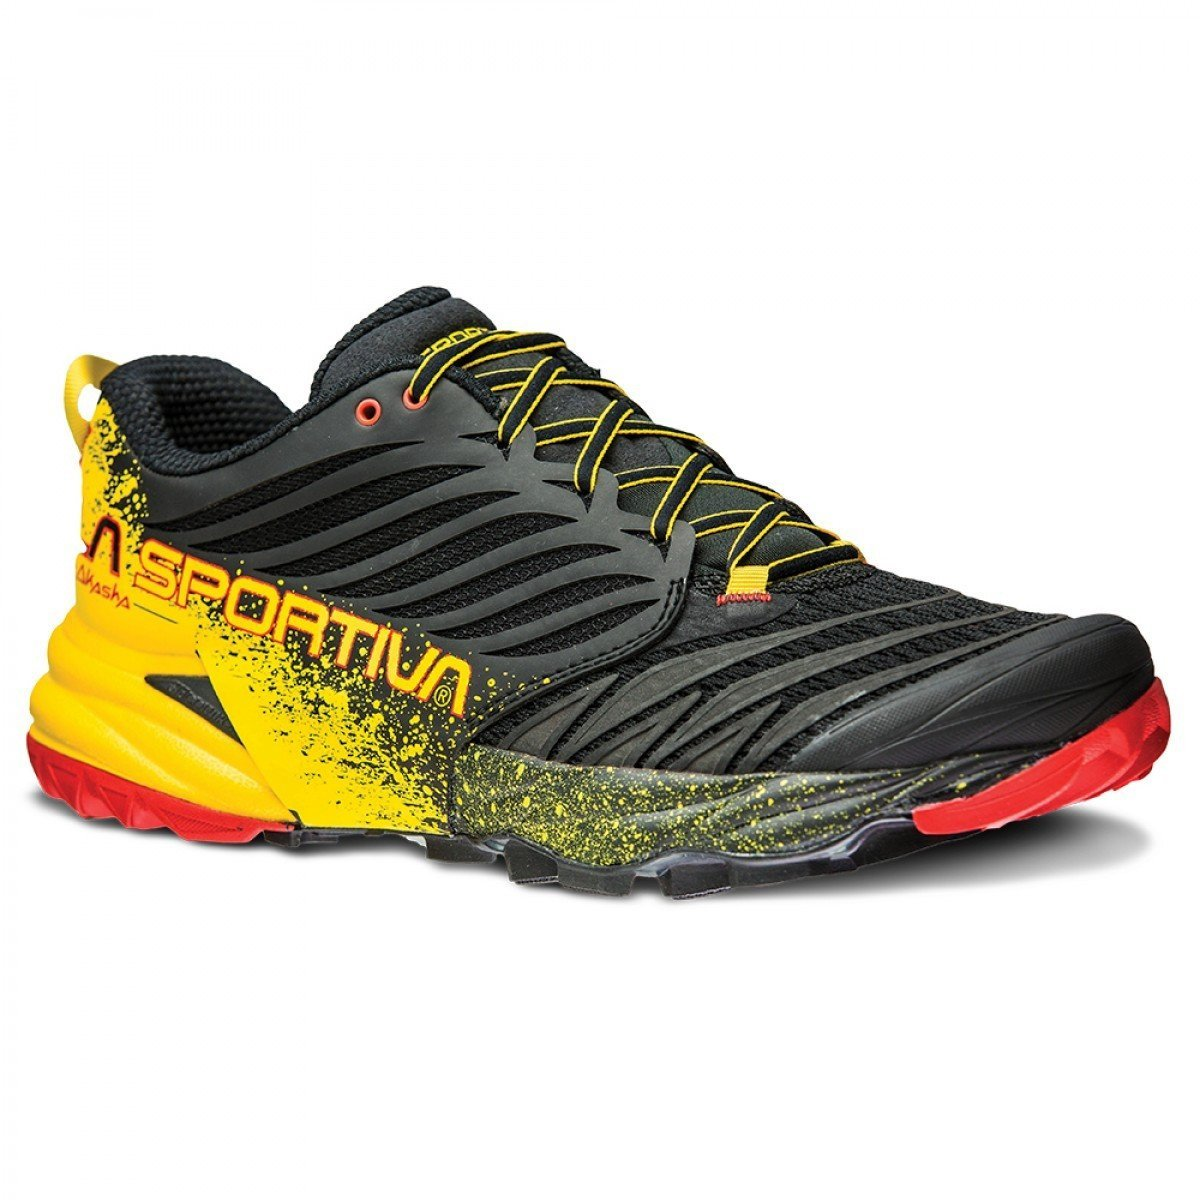 La Sportiva Akasha running shoe, outer side view in Black/Yellow/red colours